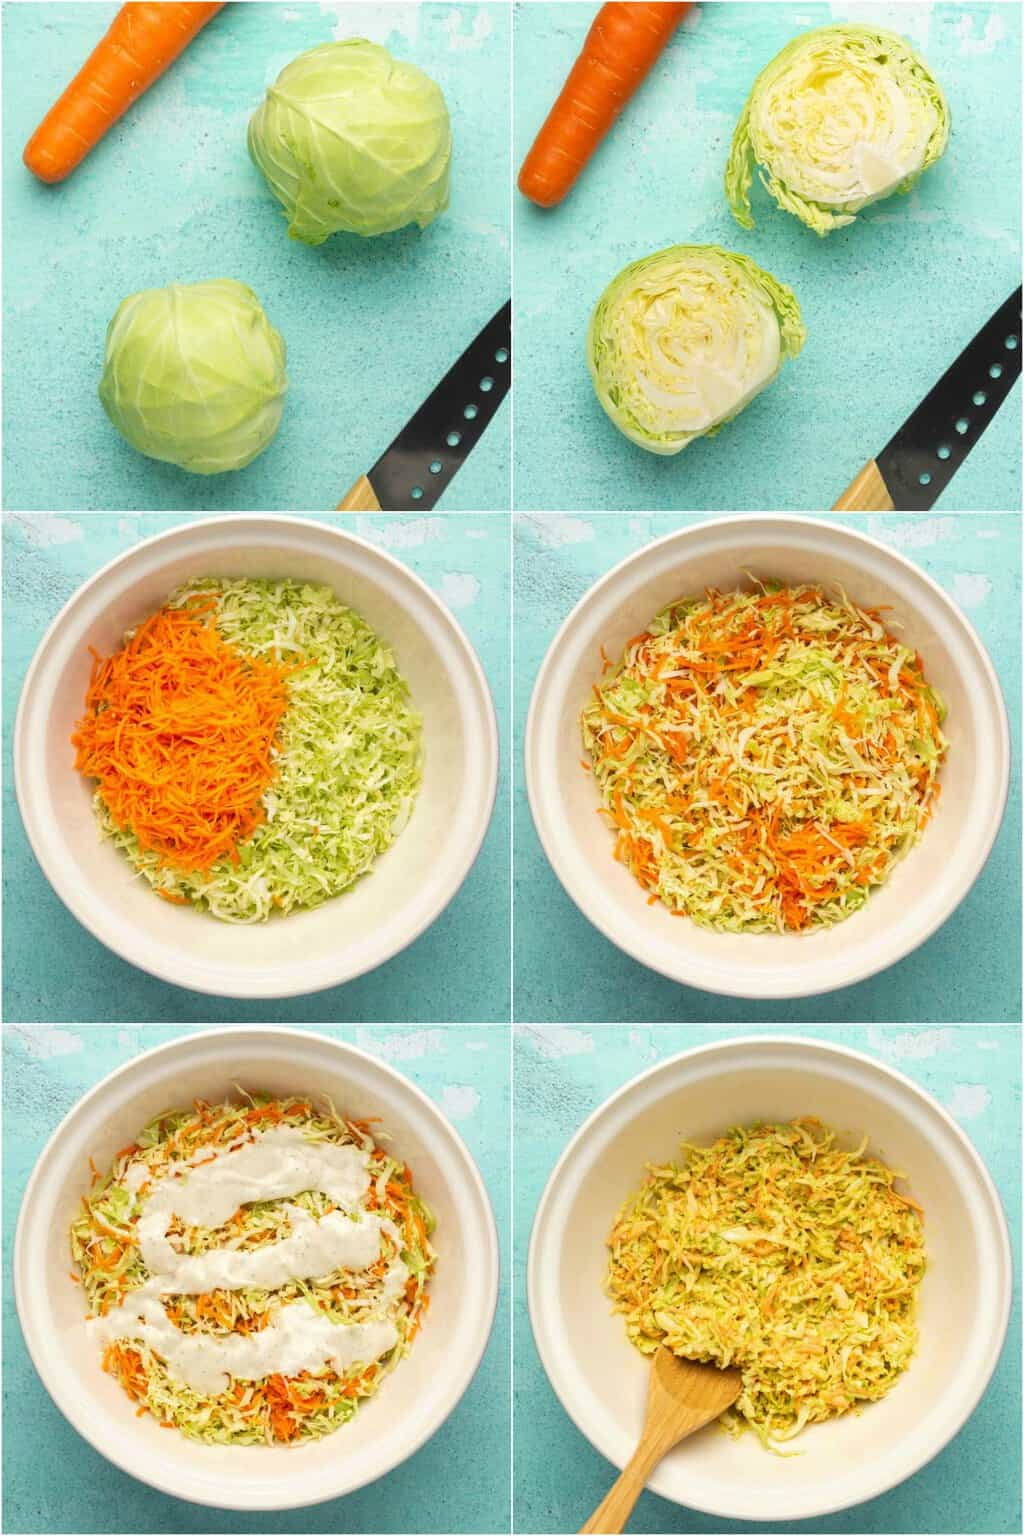 Step by step process photo collage of making vegan coleslaw.